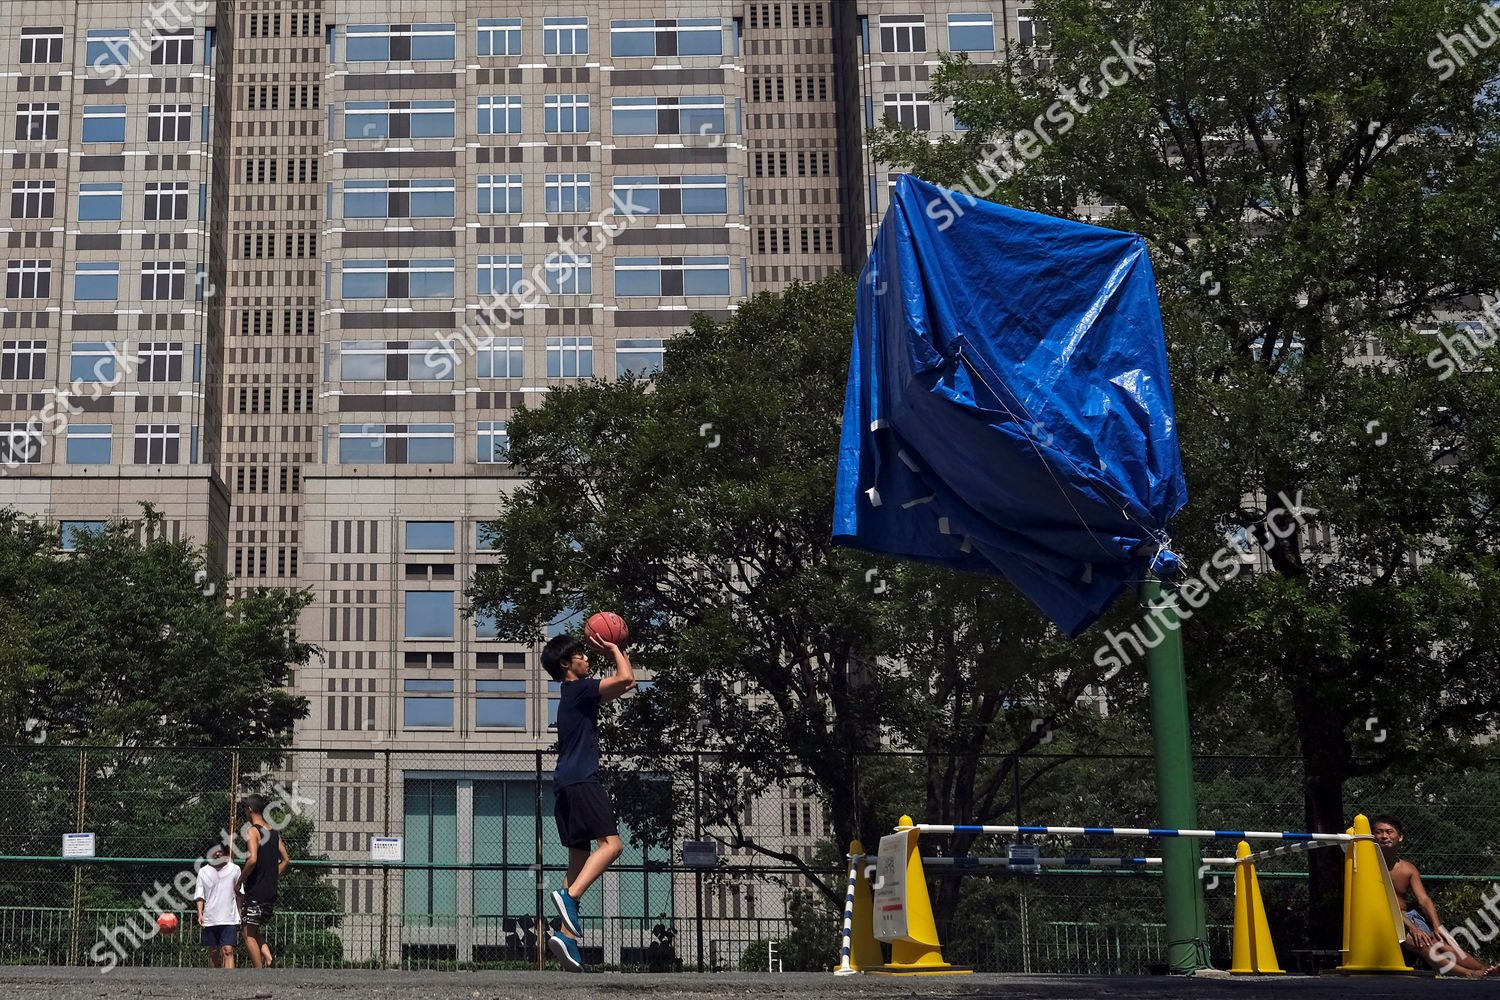 Man Practices His Jump Shot Basketball Backdrop Editorial Stock Photo Stock Image Shutterstock